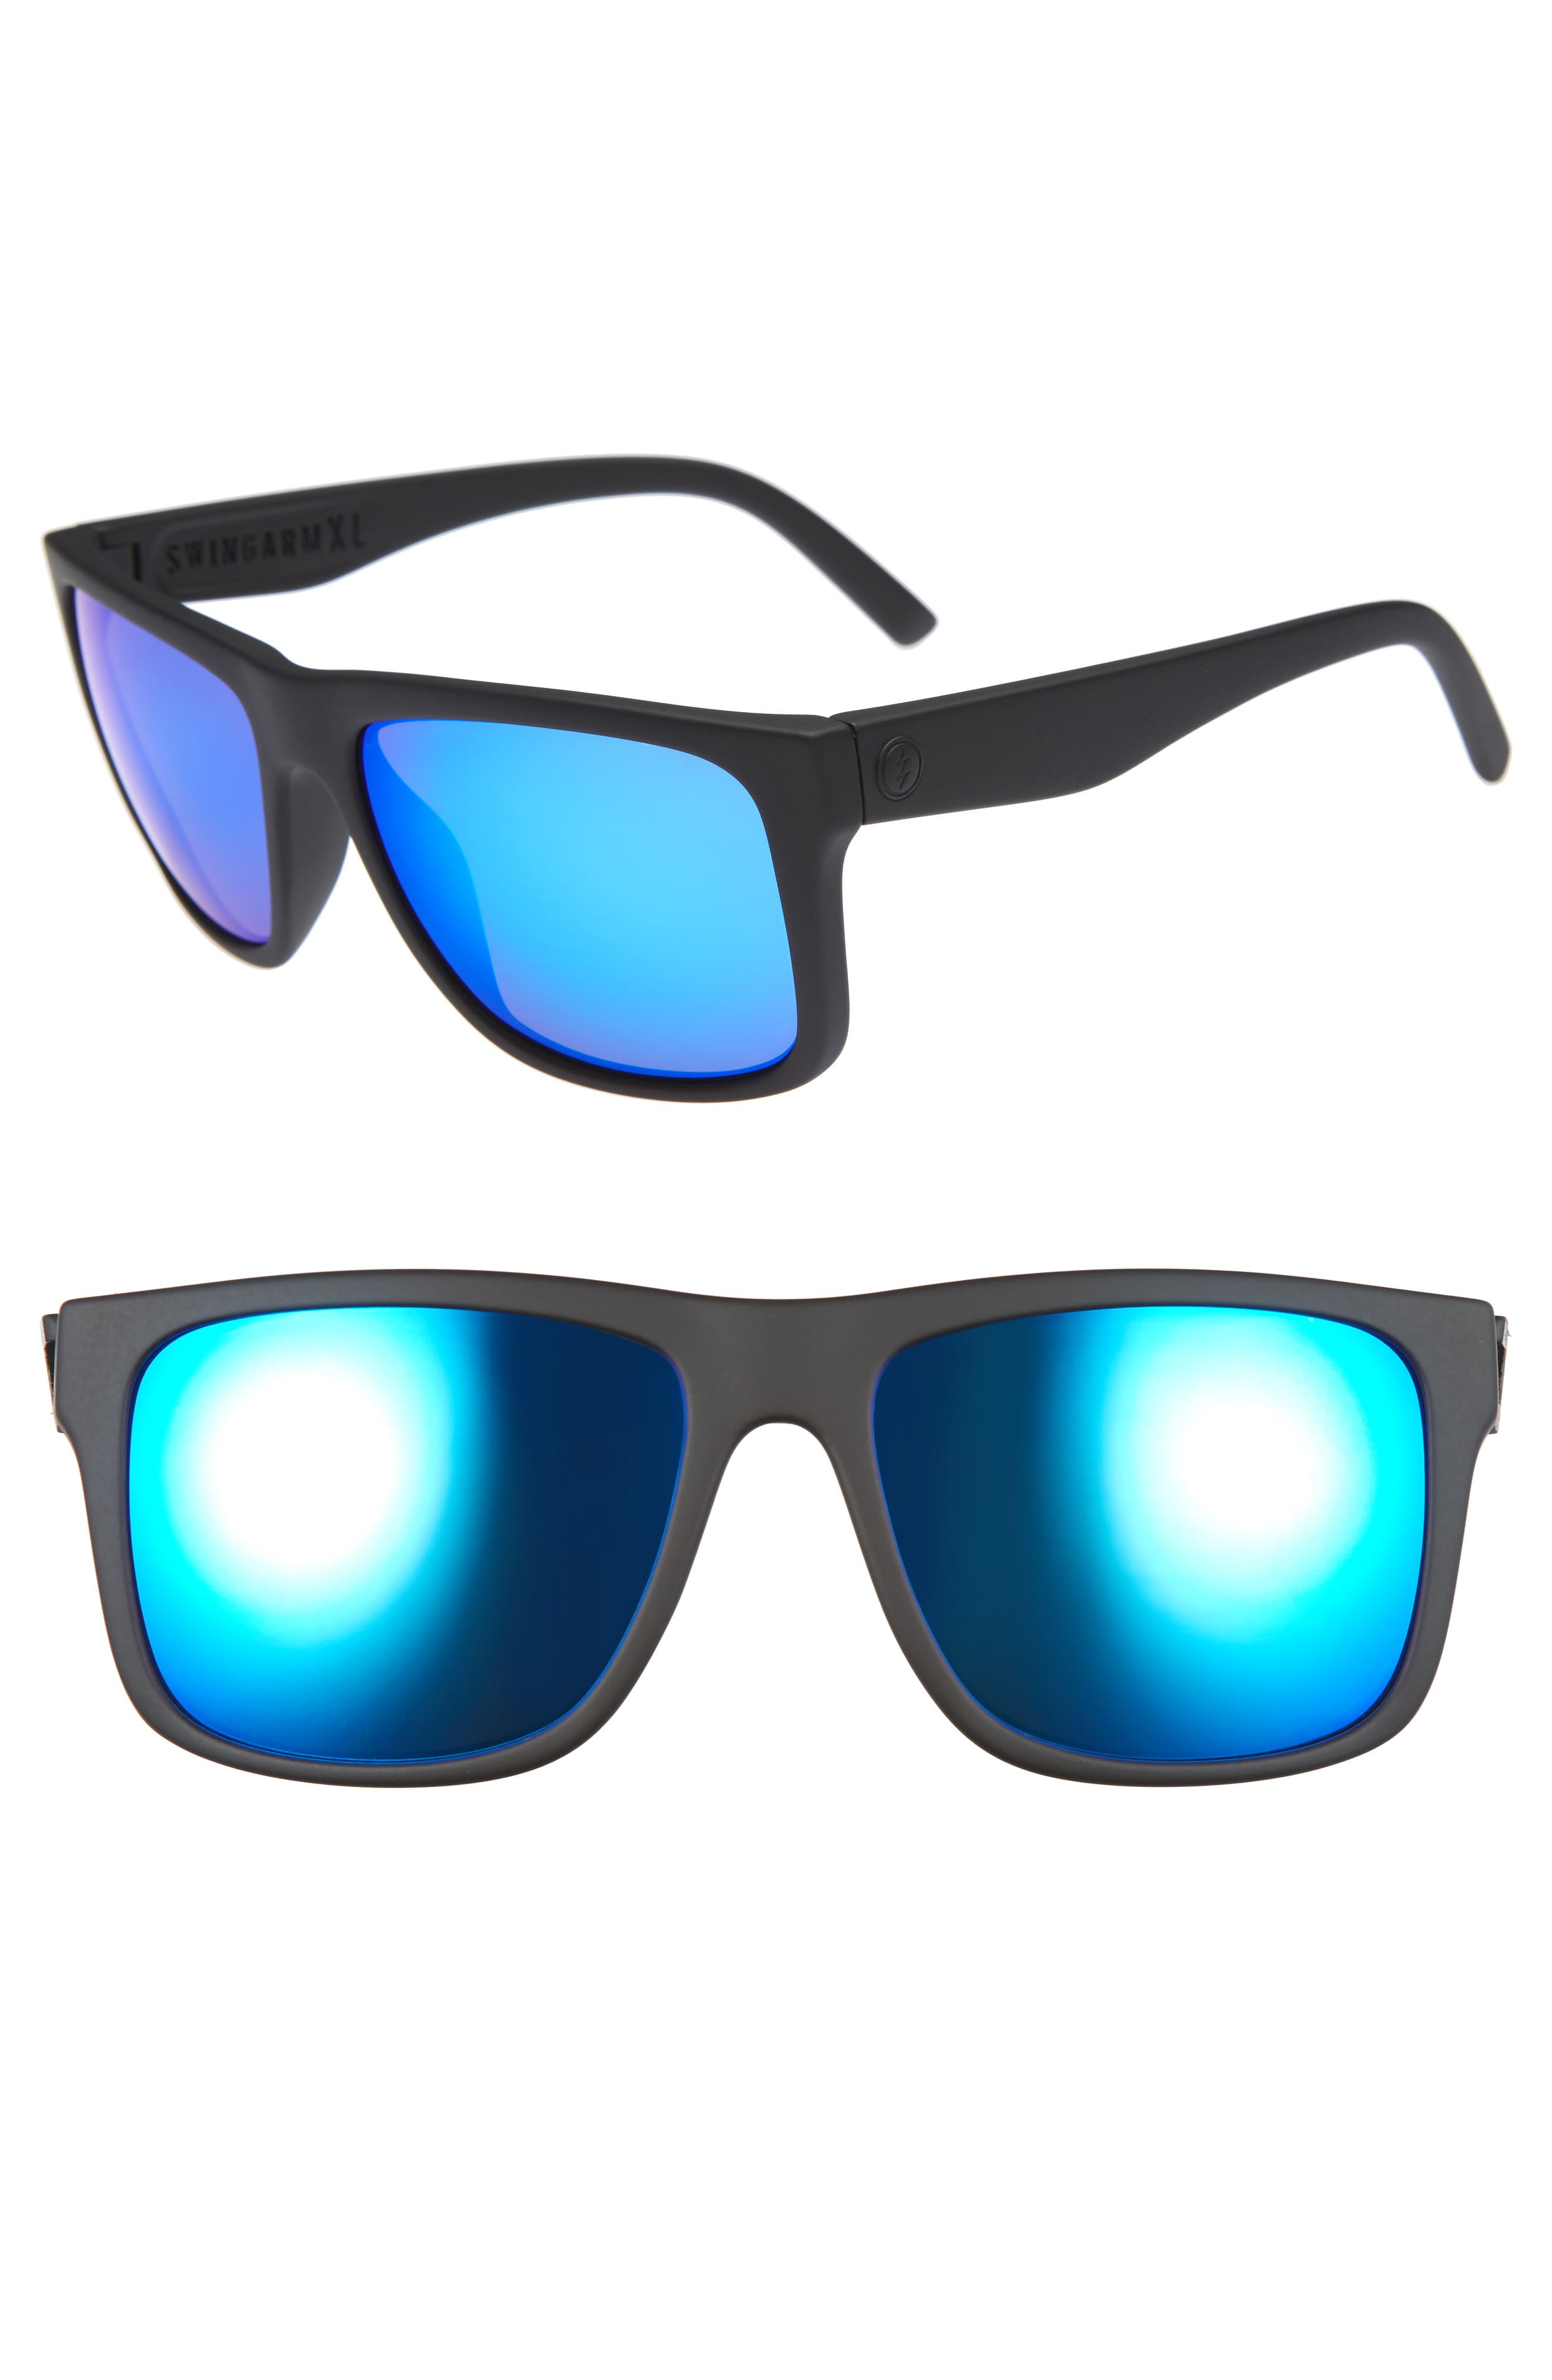 Swingarm XL 59mm Sunglasses,                             Main thumbnail 1, color,                             Matte Black/ Blue Chrome